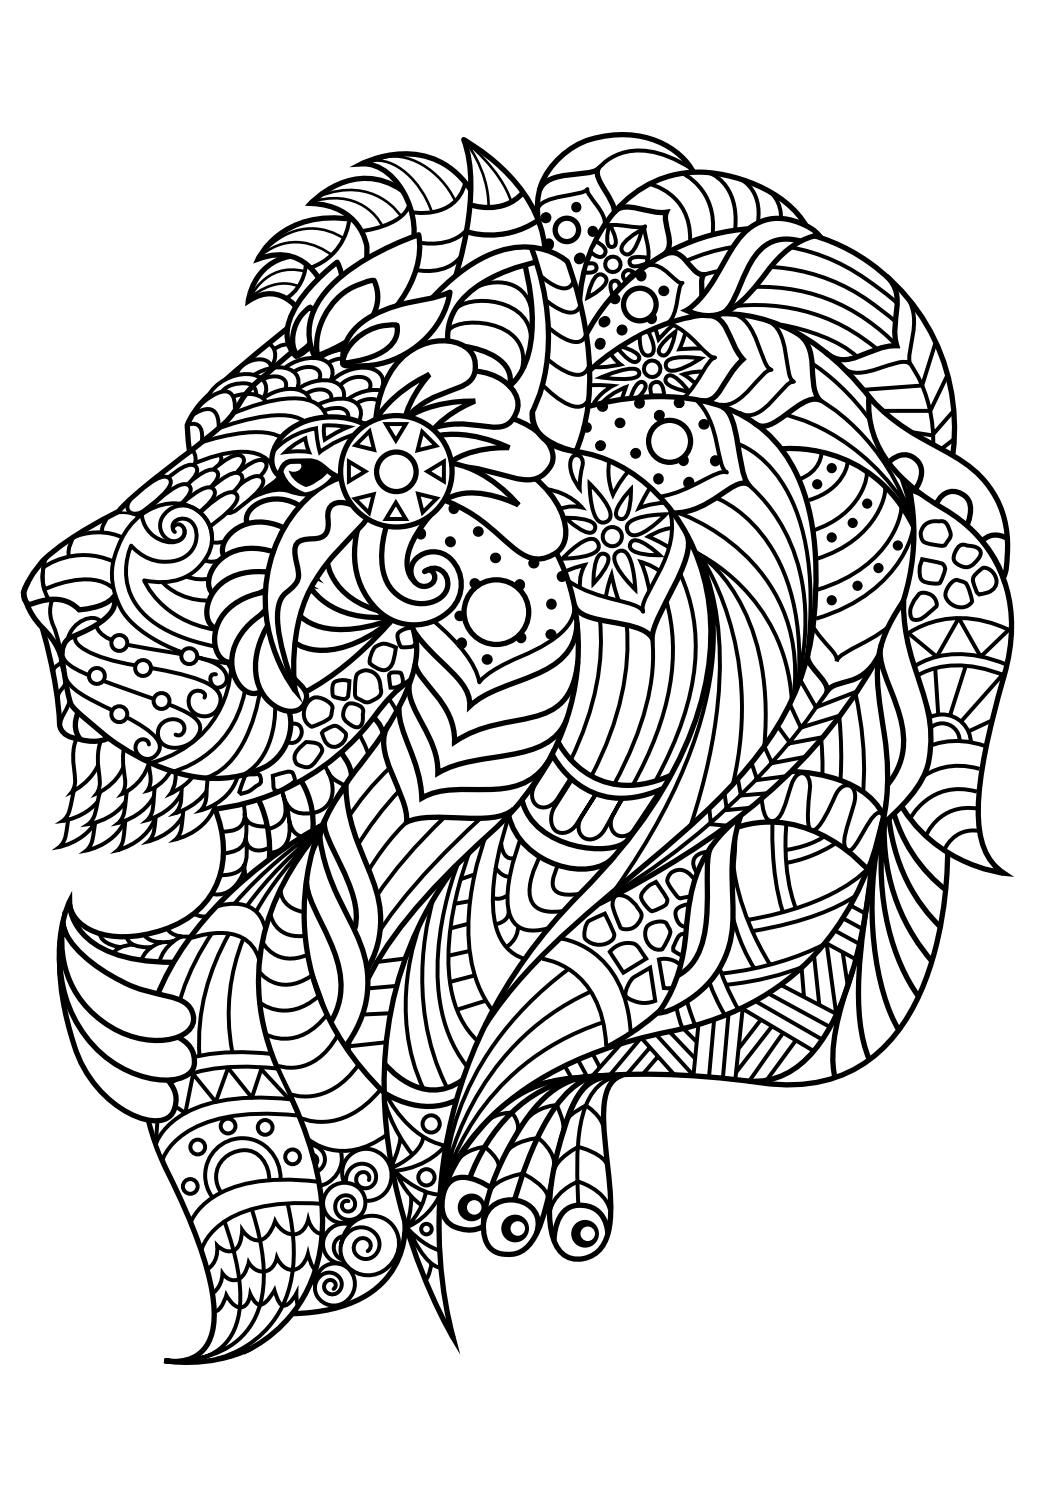 Crafty image for free printable coloring pages of animals